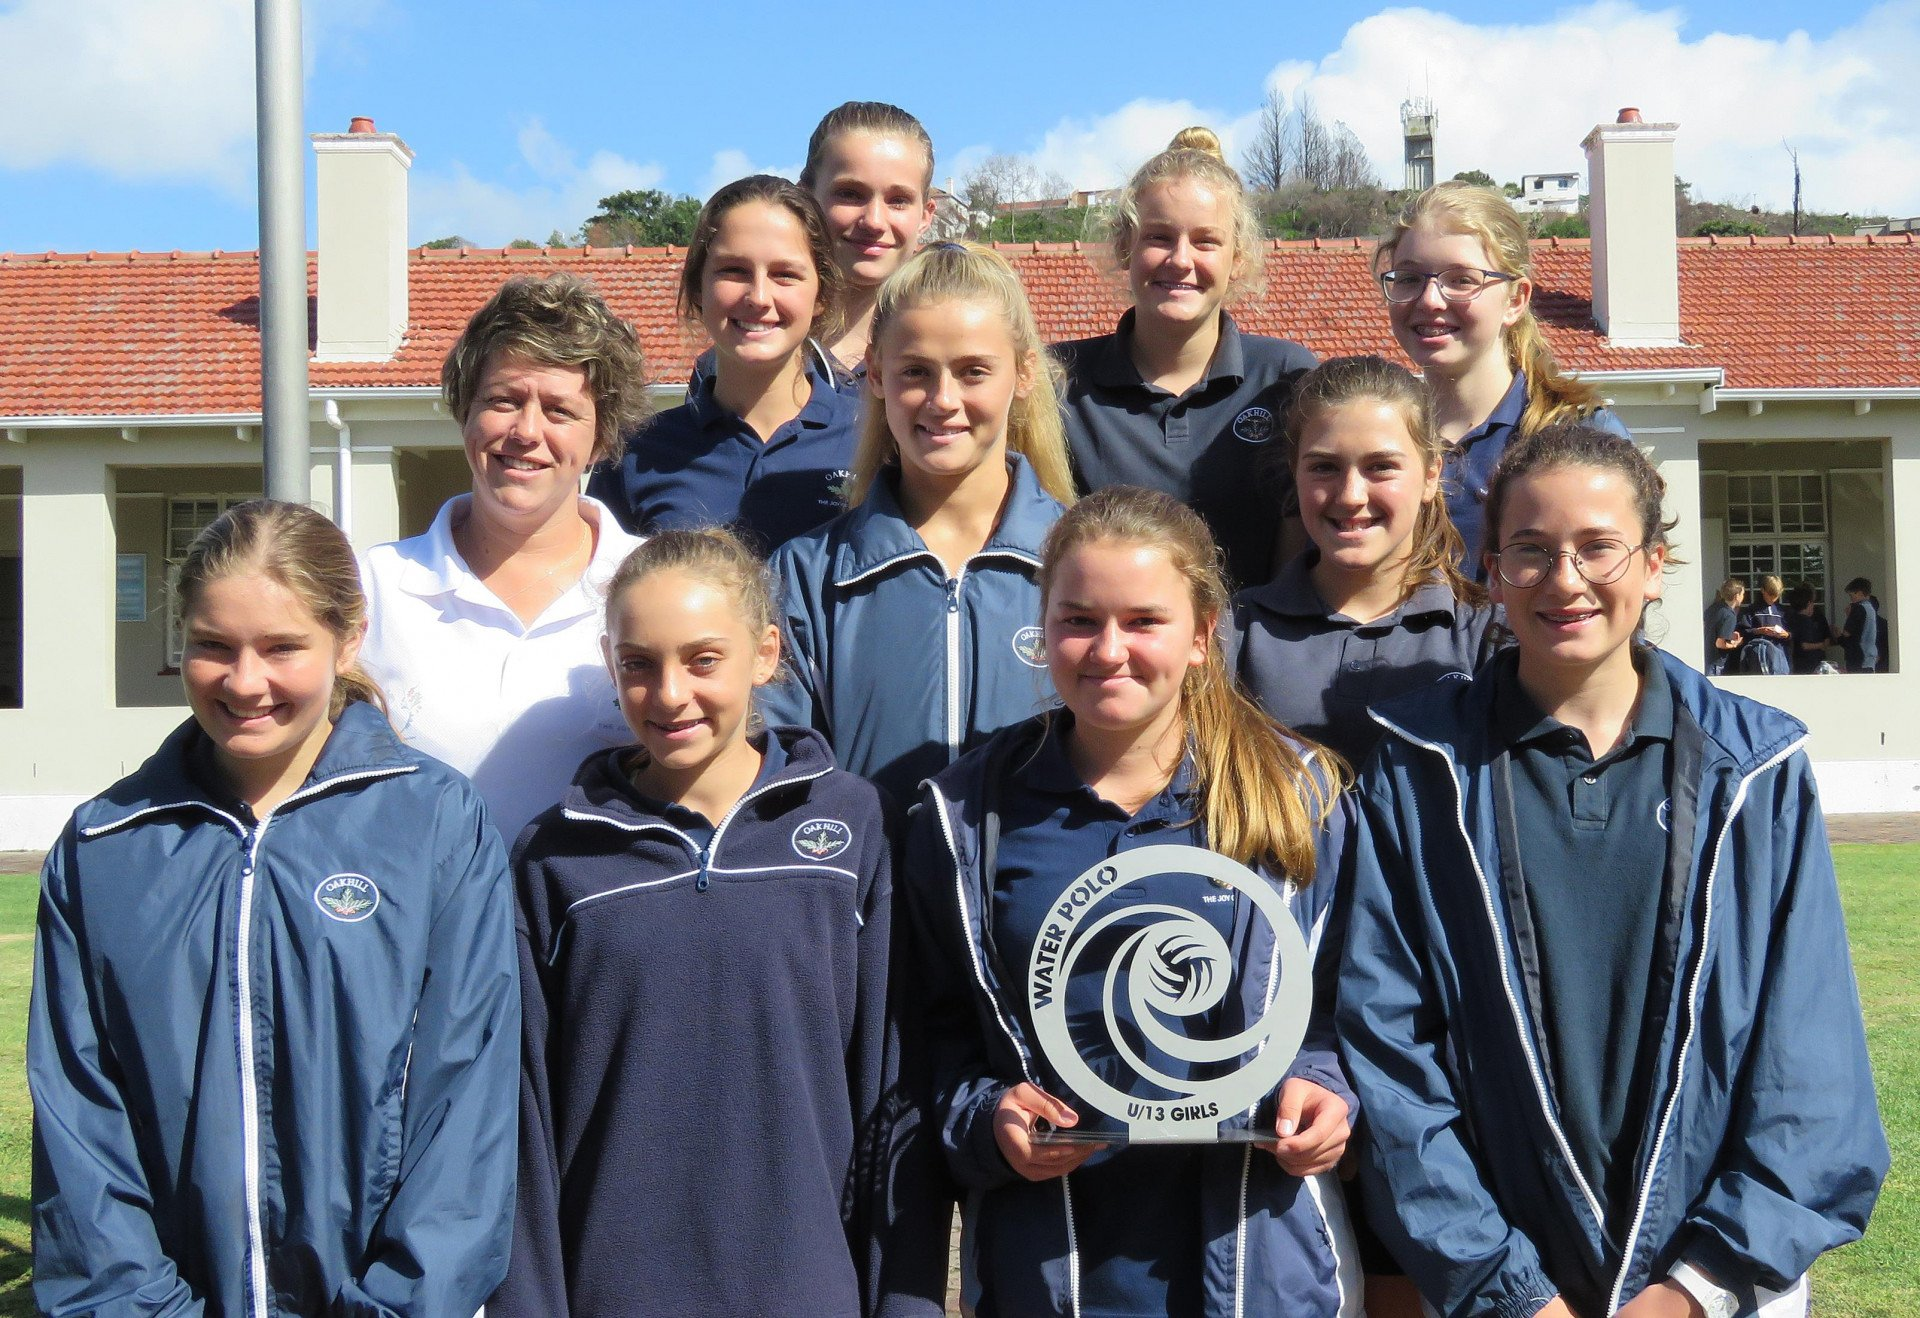 Oakhill U13A girls team win the SWD Water Polo League trophy